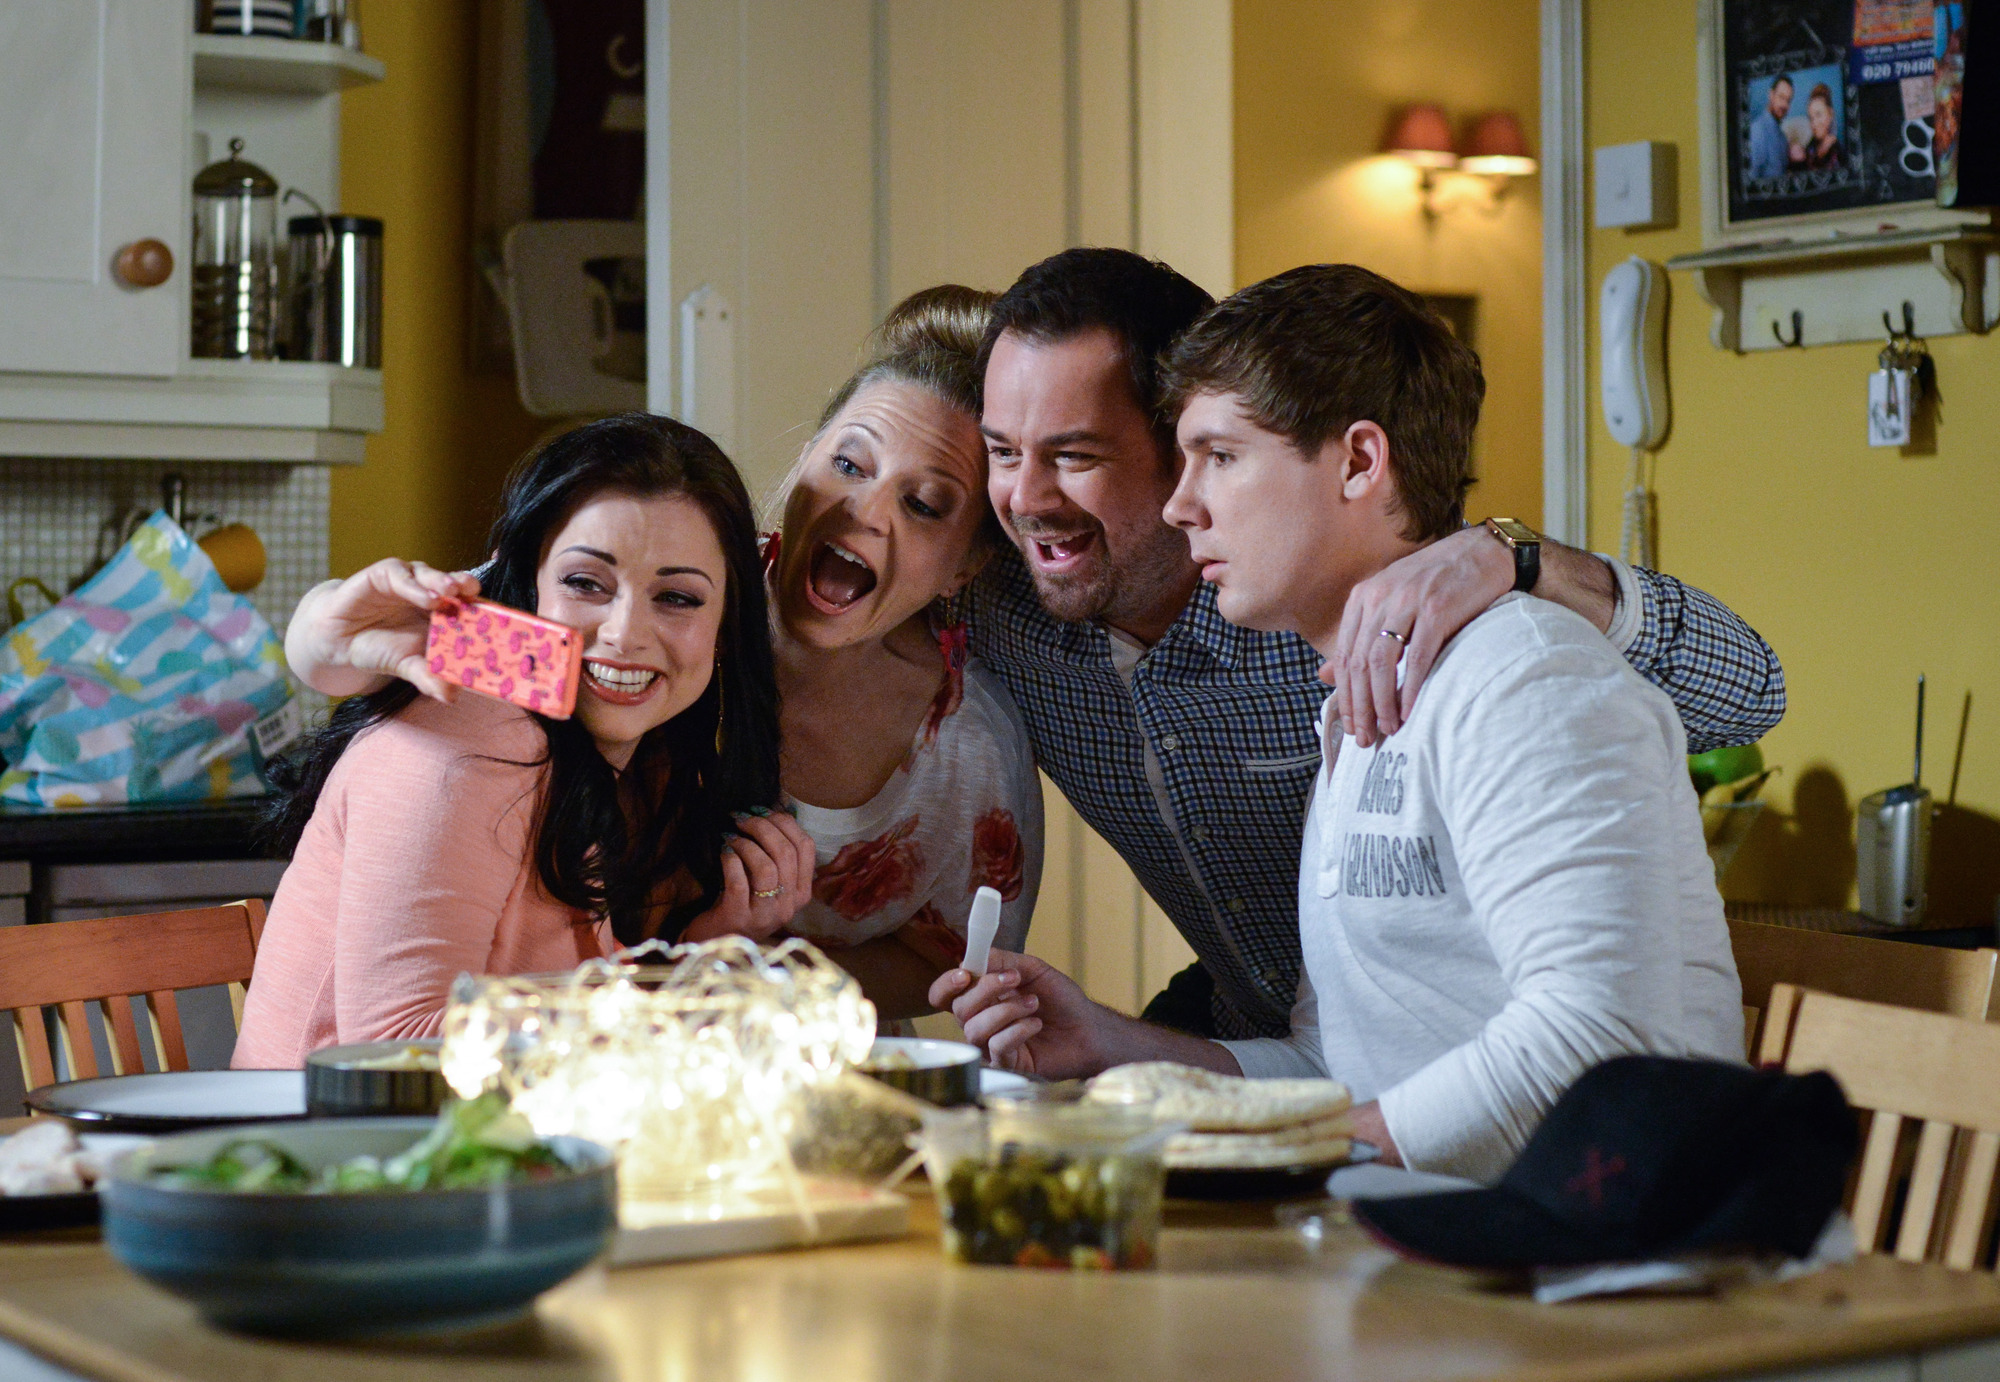 WARNING: Embargoed for publication until 00:00:01 on 12/07/2016 - Programme Name: EastEnders - July - September 2016 - TX: 19/07/2016 - Episode: EastEnders July - September 2016 - 5318 (No. n/a) - Picture Shows: *STRICTLY NOT FOR PUBLICATION UNTIL 00:01HRS, TUESDAY 12th JULY, 2016* Mick & Linda celebrate with Whitney & Lee at the prospect of being grandparents. Whitney Dean (SHONA MCGARTY), Linda Carter (KELLIE BRIGHT), Mick Carter (DANNY DYER), Lee Carter (DANNY-BOY HATCHARD) - (C) BBC - Photographer: Kieron McCarron